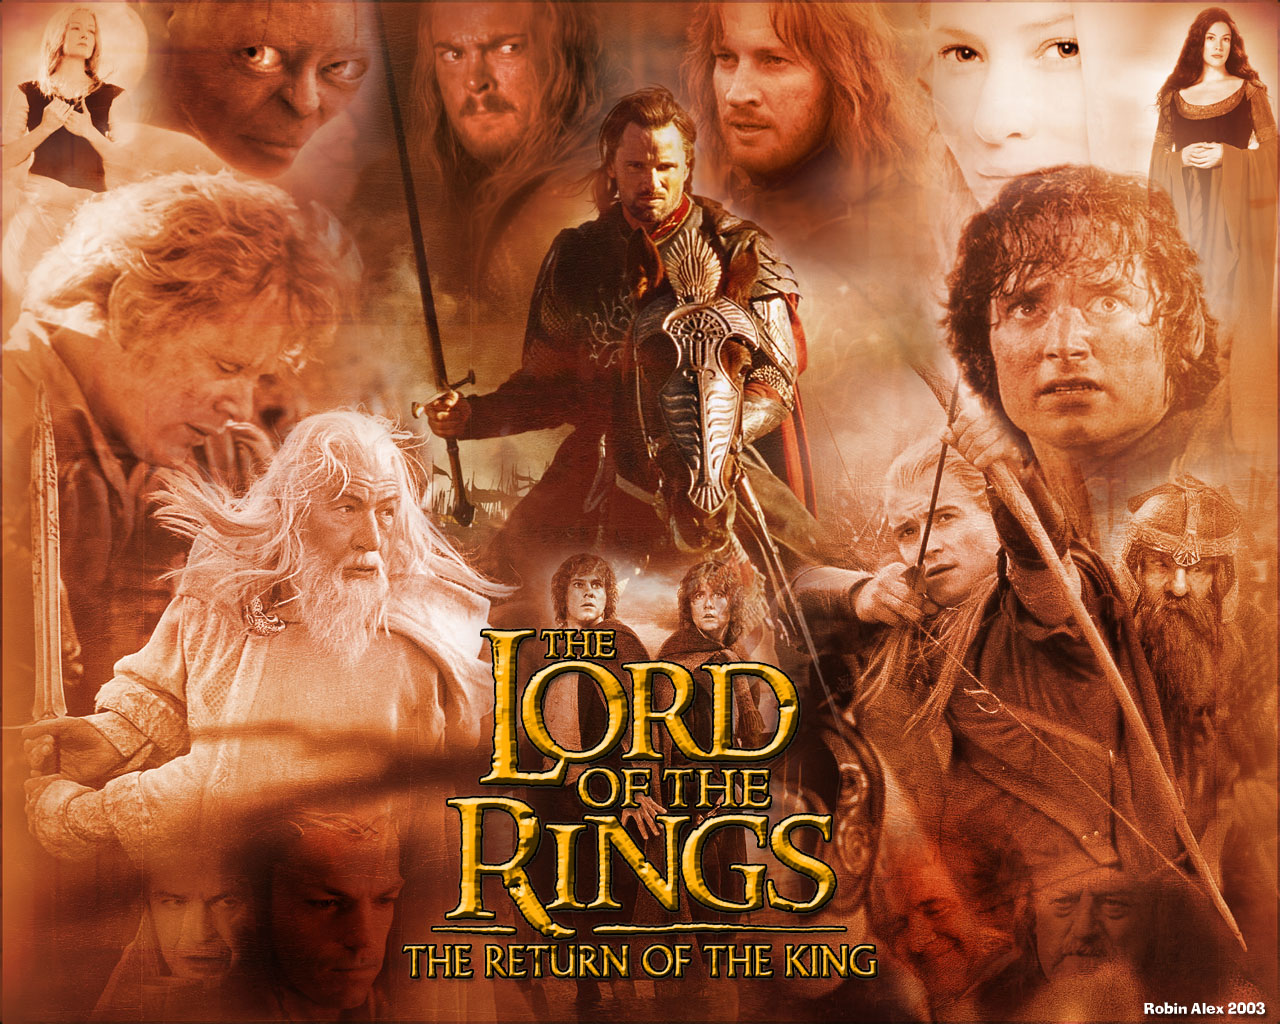 a themes of evil greed lust and destruction in the lord of the rings trilogy directed by peter jacks High fantasy and the lord of the rings racial archetypes the most serious of all themes: the fight of good against evil directed by peter.